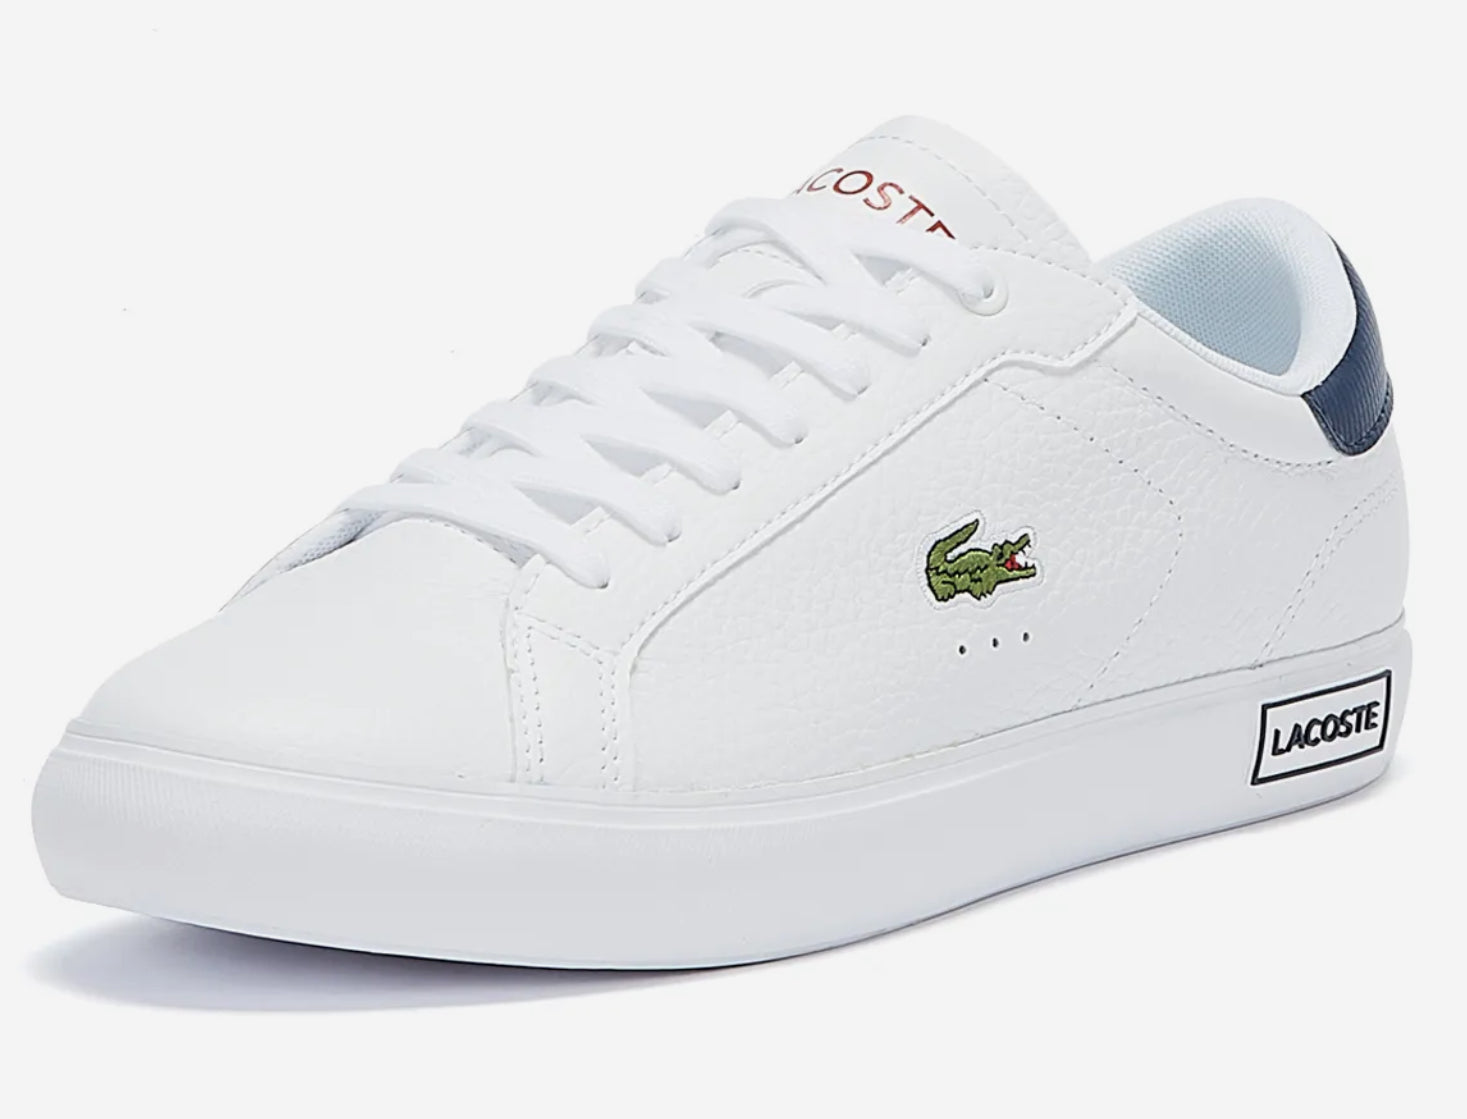 Lacoste - Powercourt- White/Navy